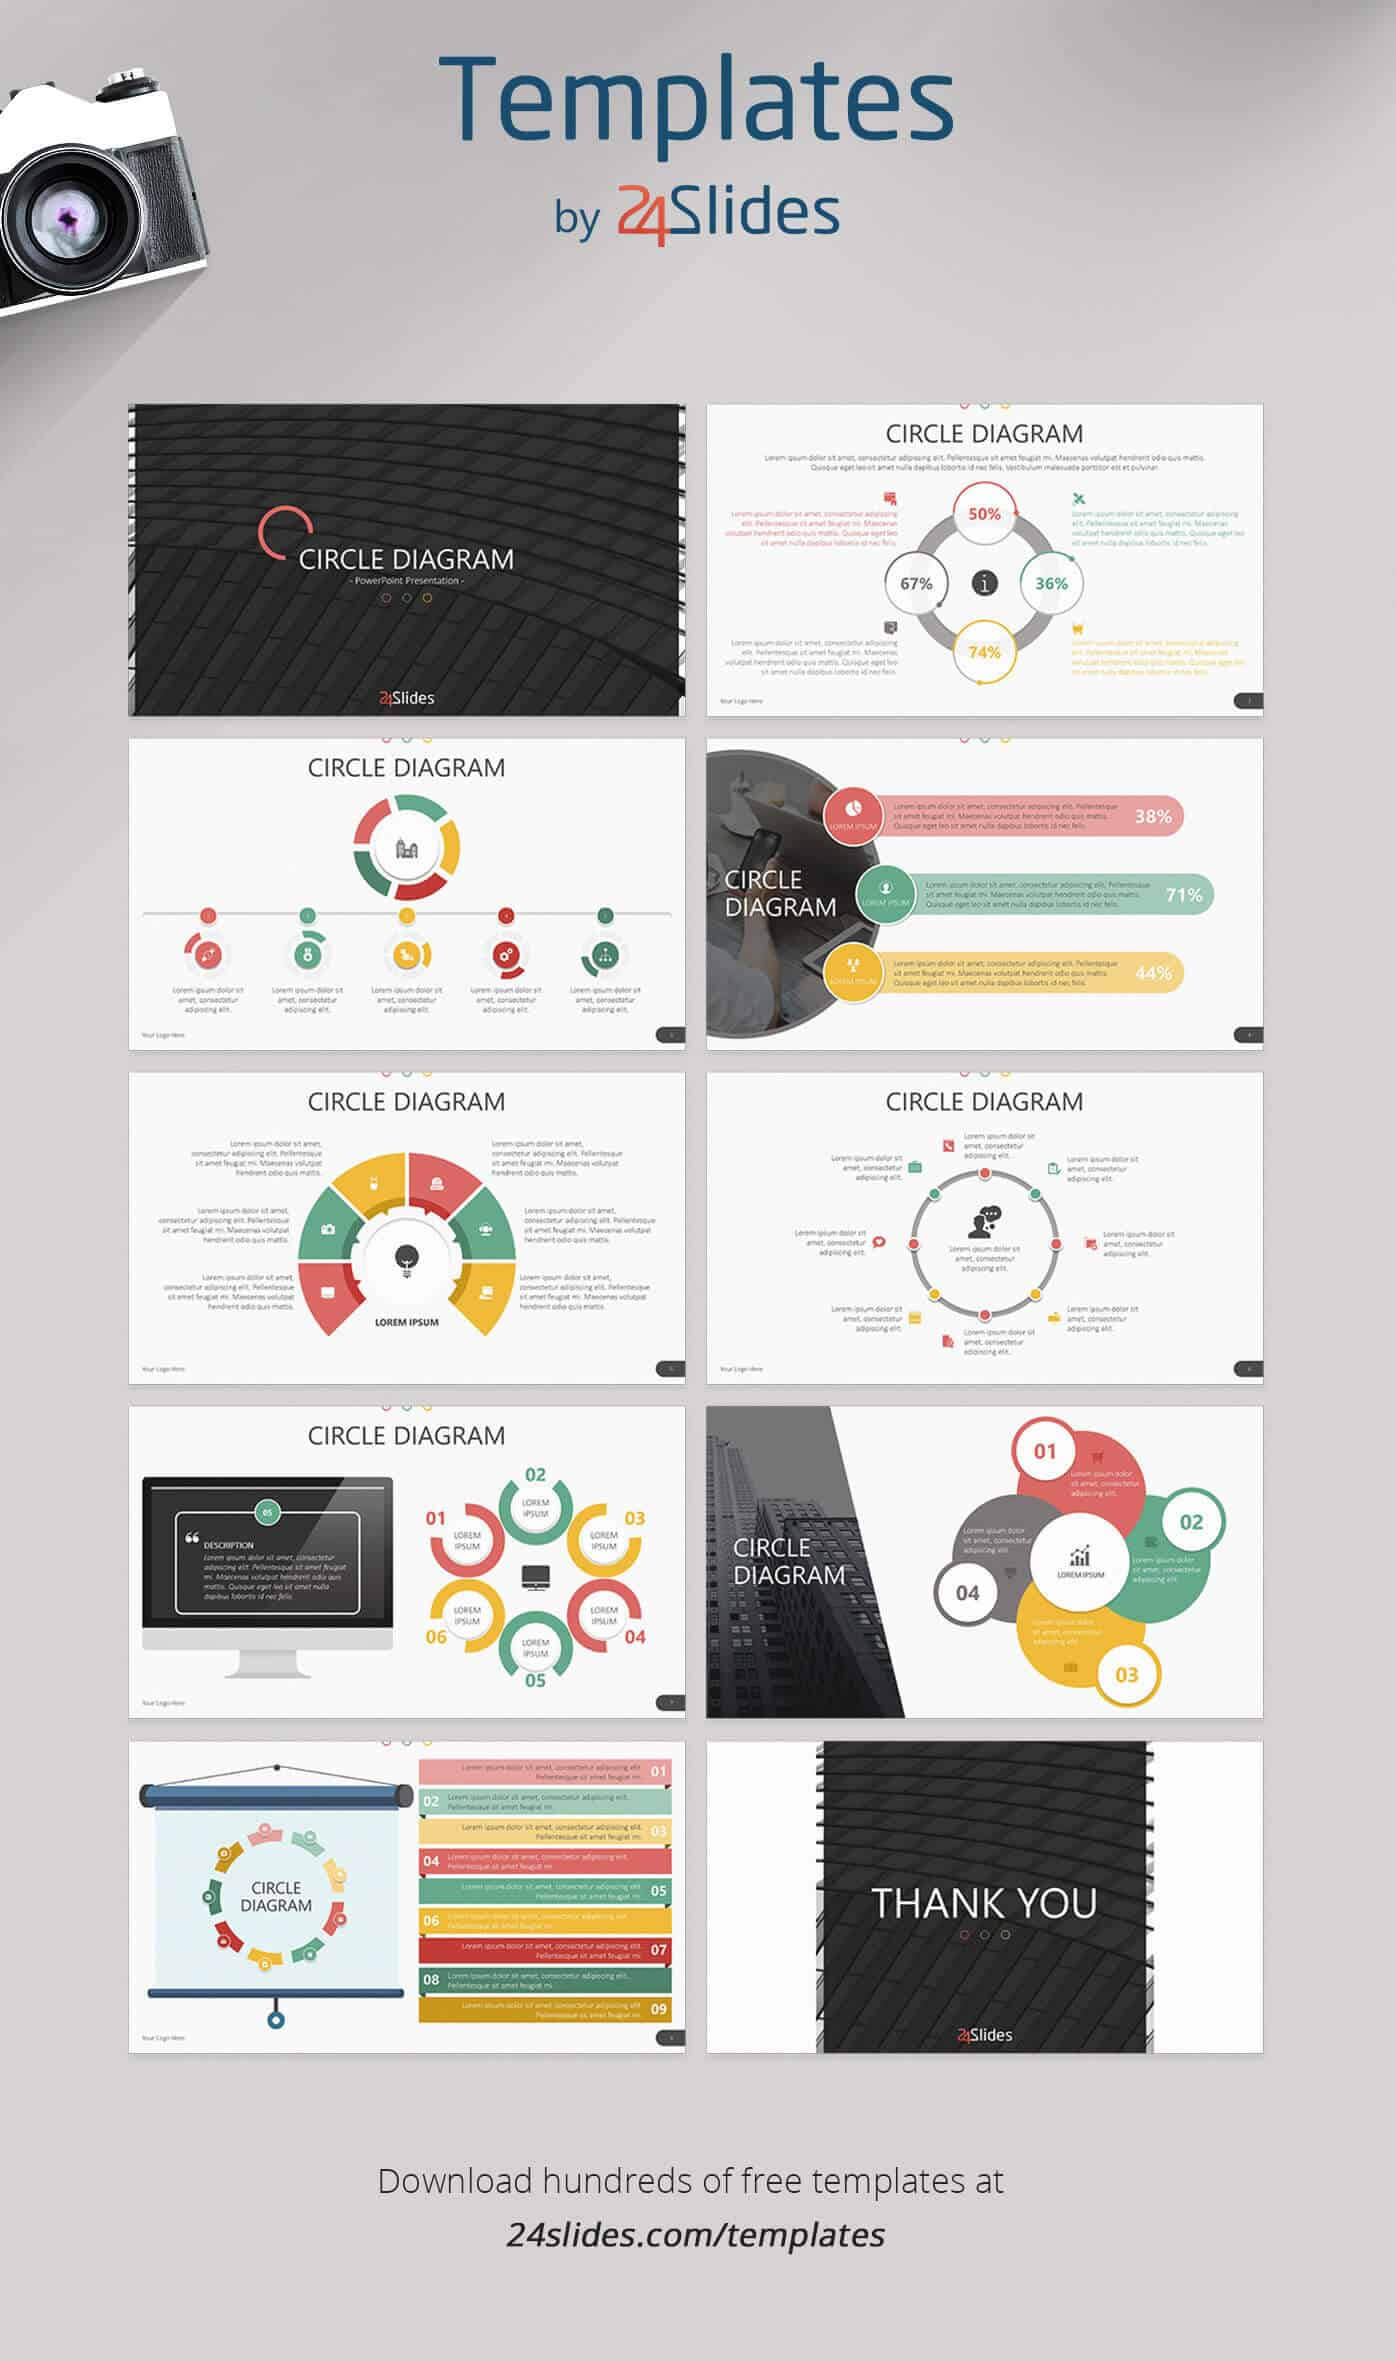 15 Fun And Colorful Free Powerpoint Templates | Present Better Pertaining To Powerpoint Photo Slideshow Template